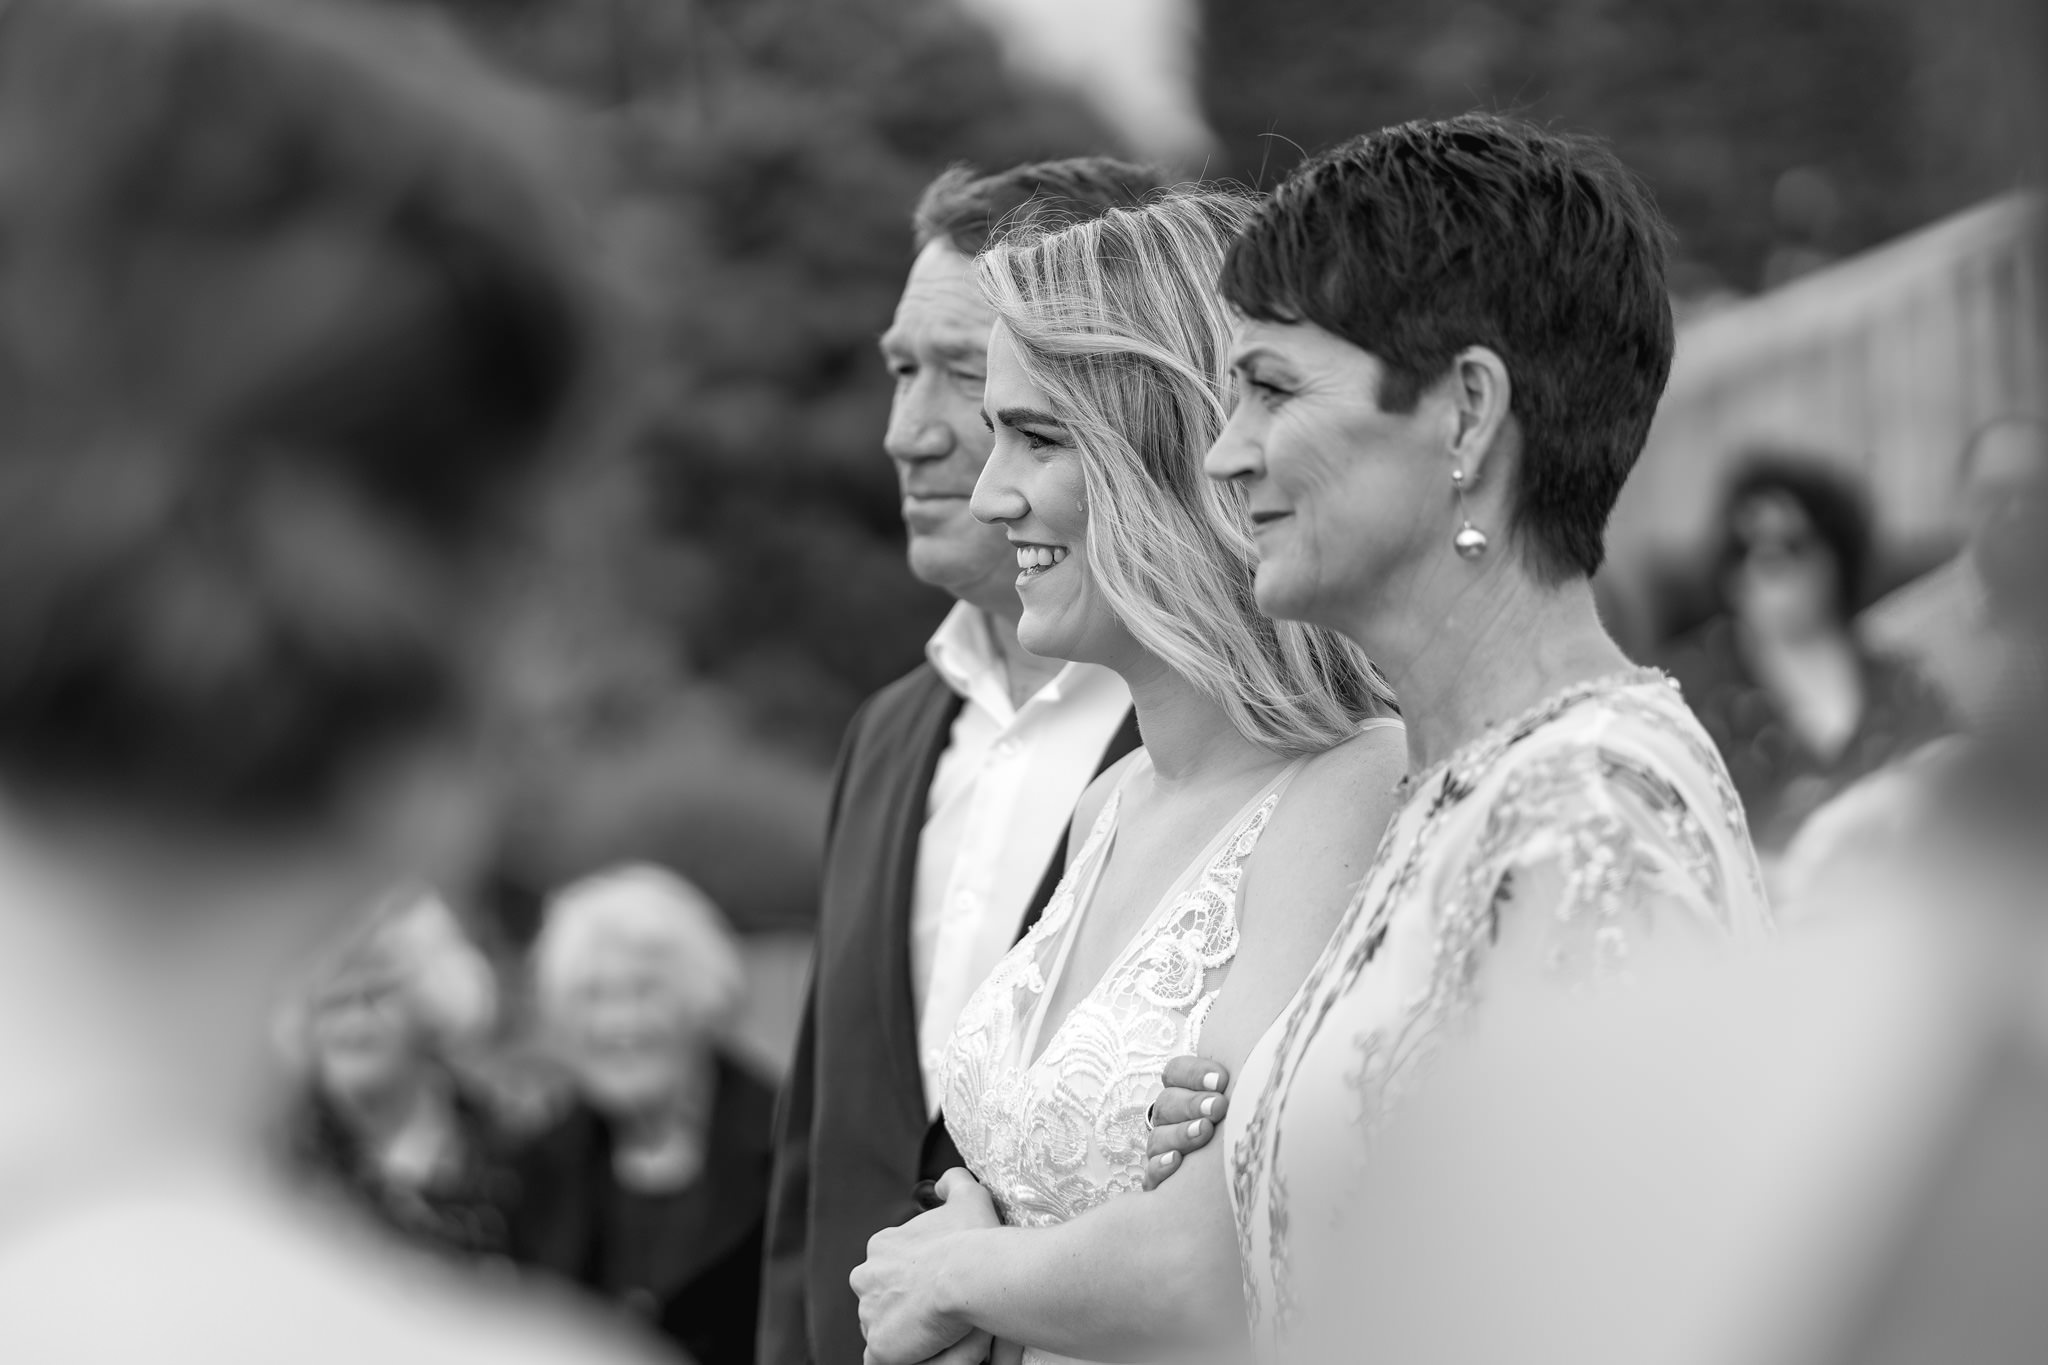 newfound-s-a-tauranga-new-zealand-wedding-photography-447